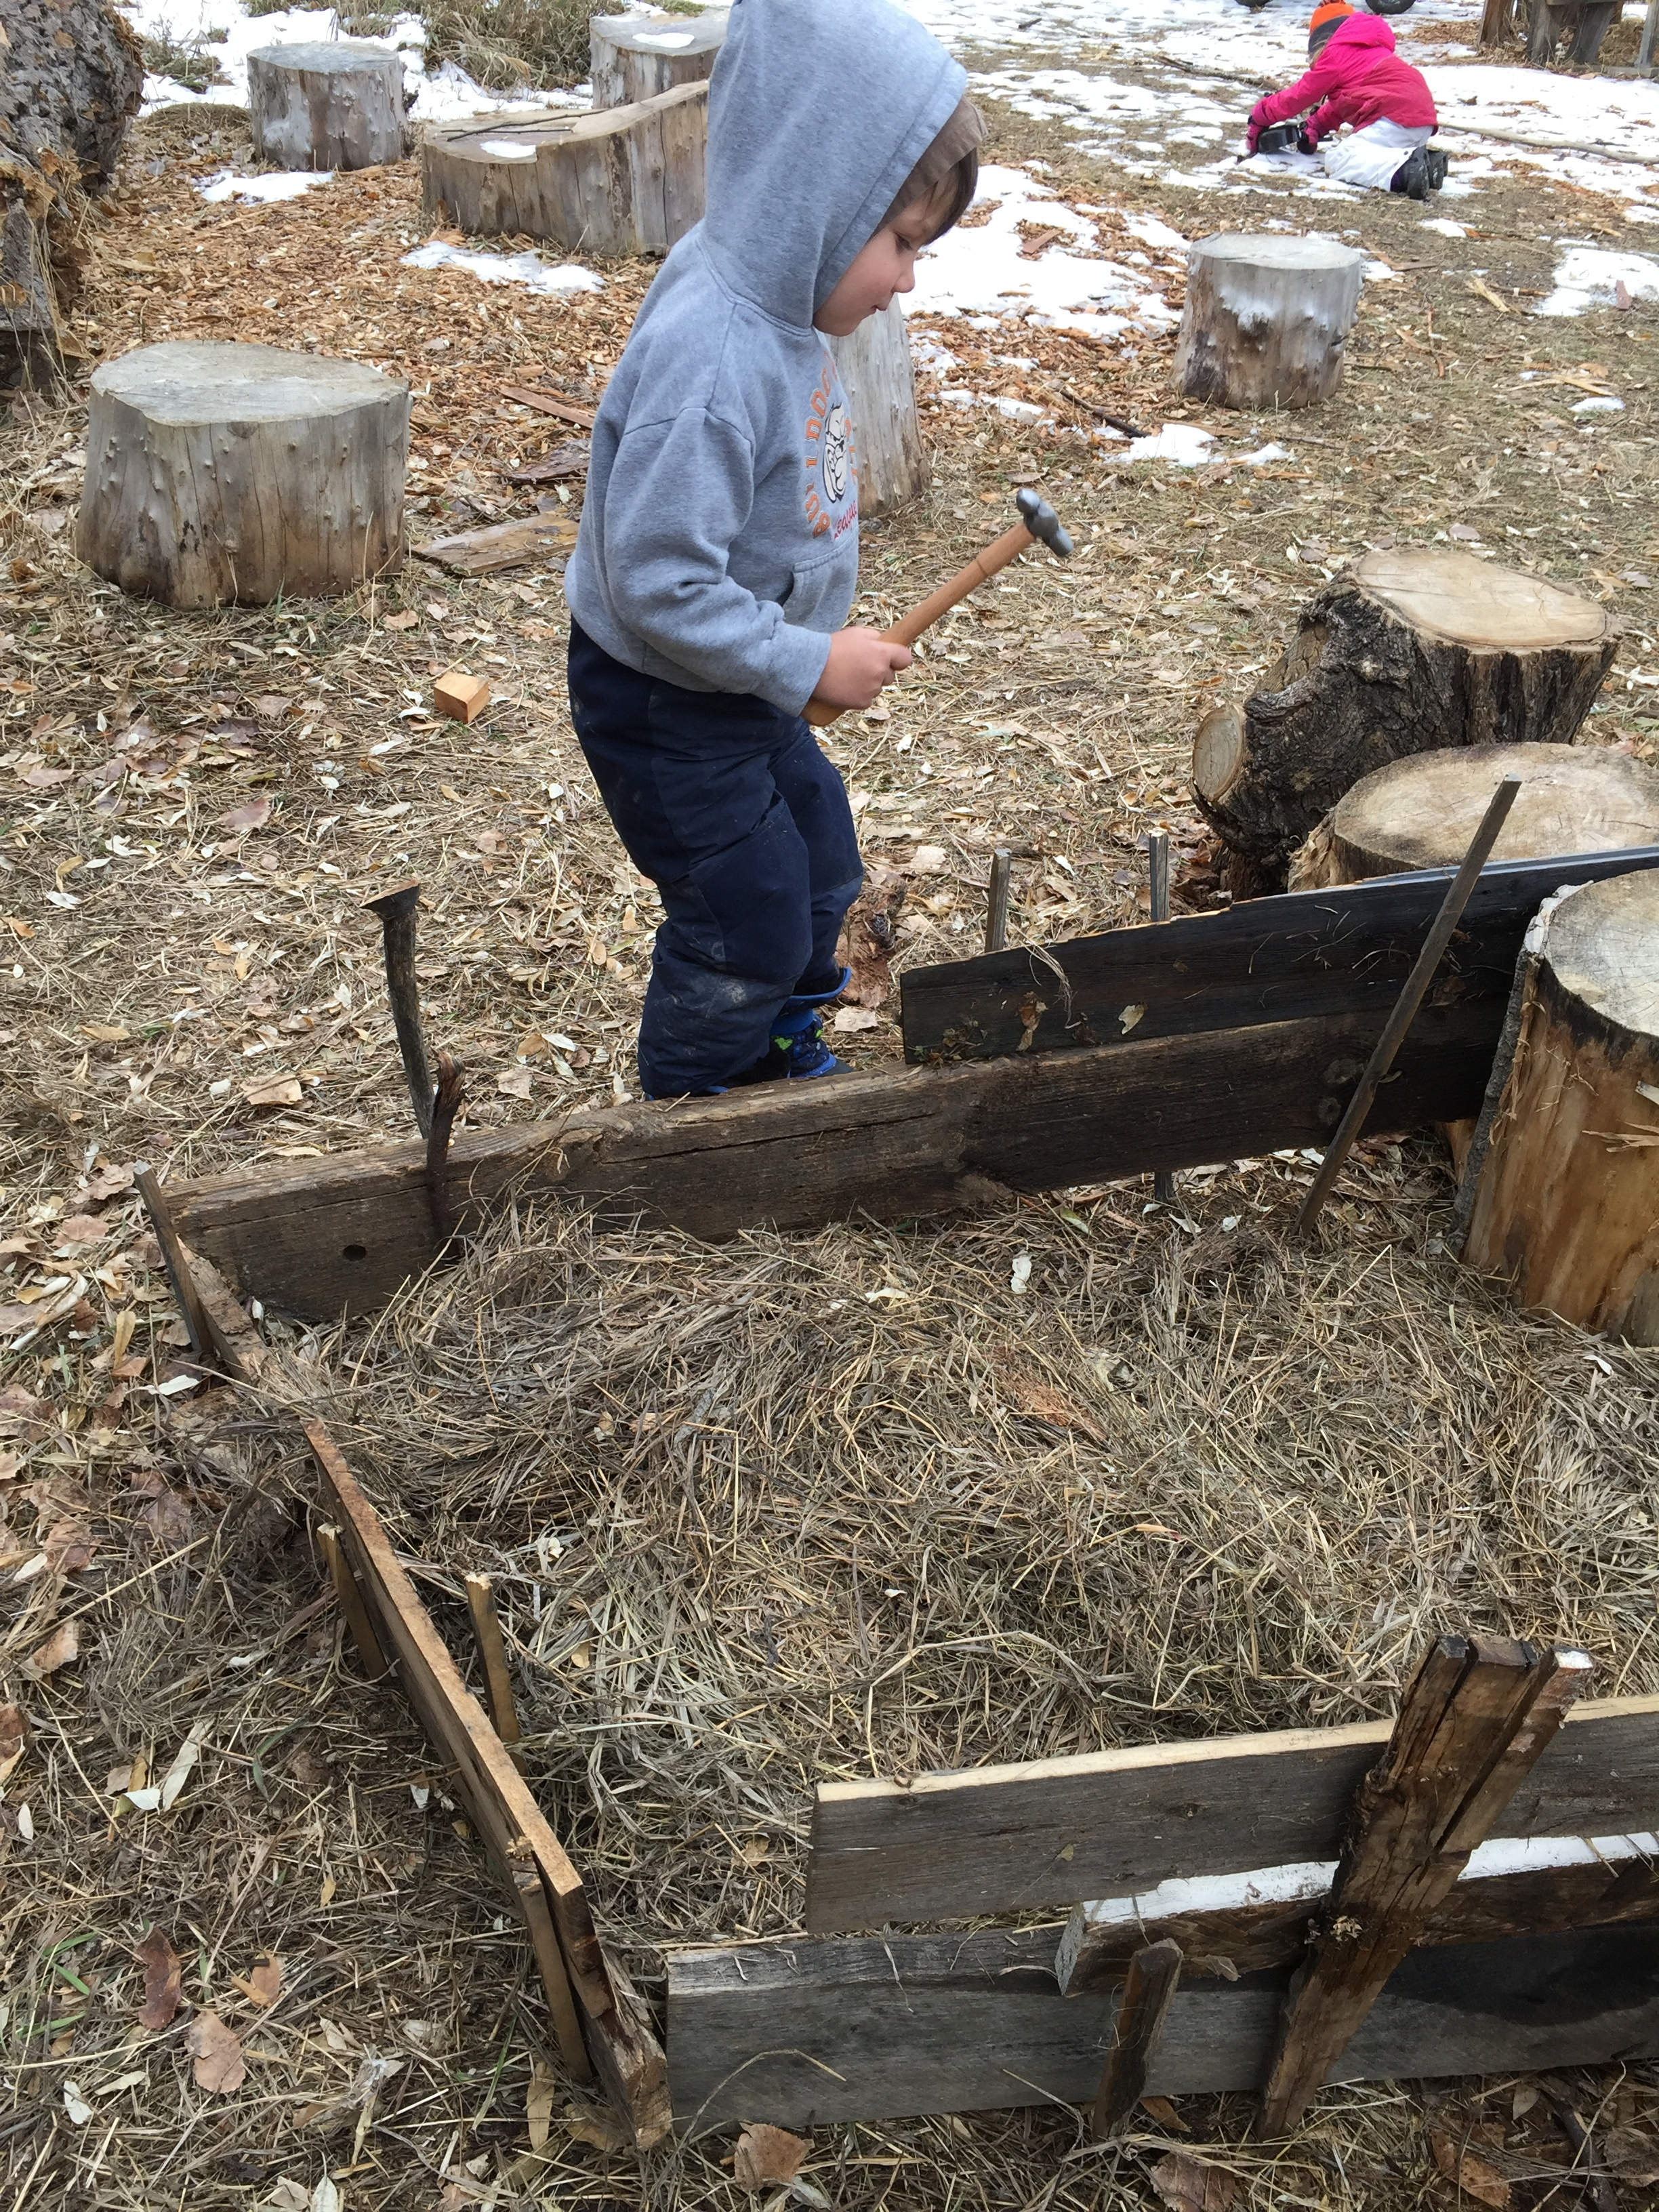 One of our builders trying out the newly discovered peg system for adding to the cabin, which now consists of two bedrooms, a living room, a woodpile and outdoor kitchen, as well as a pantry.